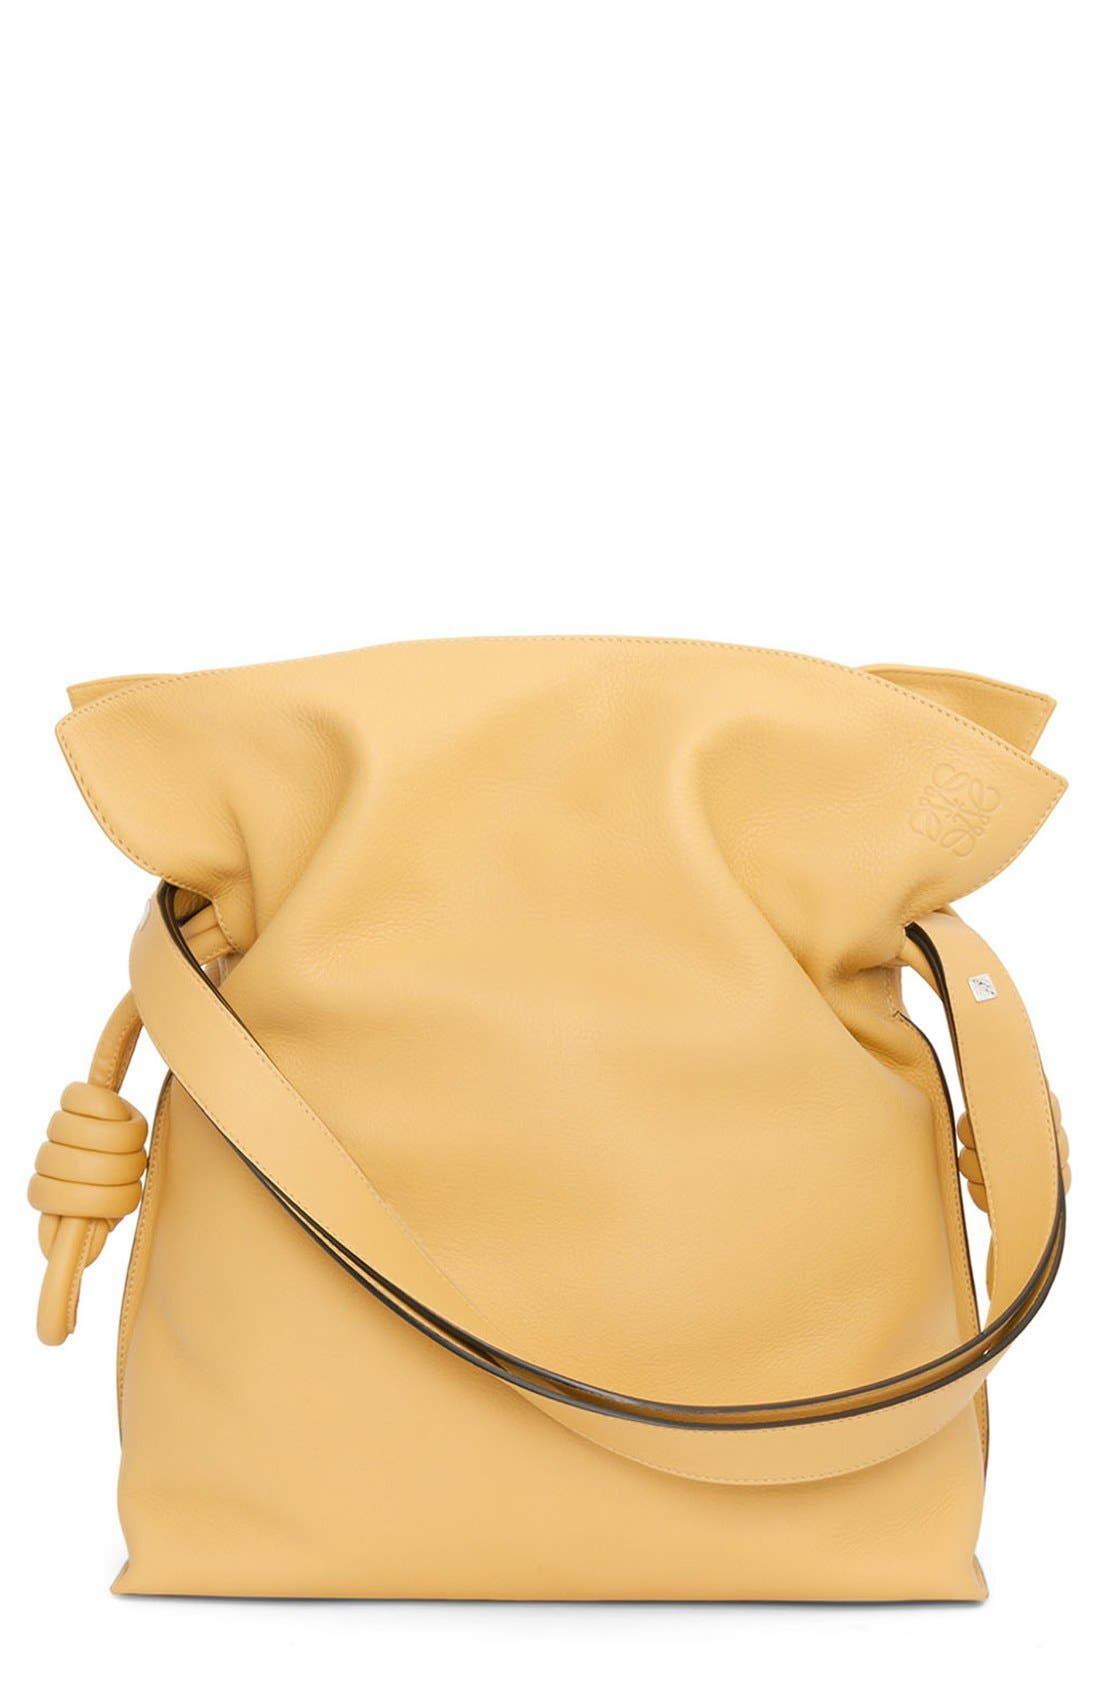 Alternate Image 1 Selected - Loewe 'Flamenco Knot' Calfskin Leather Bag